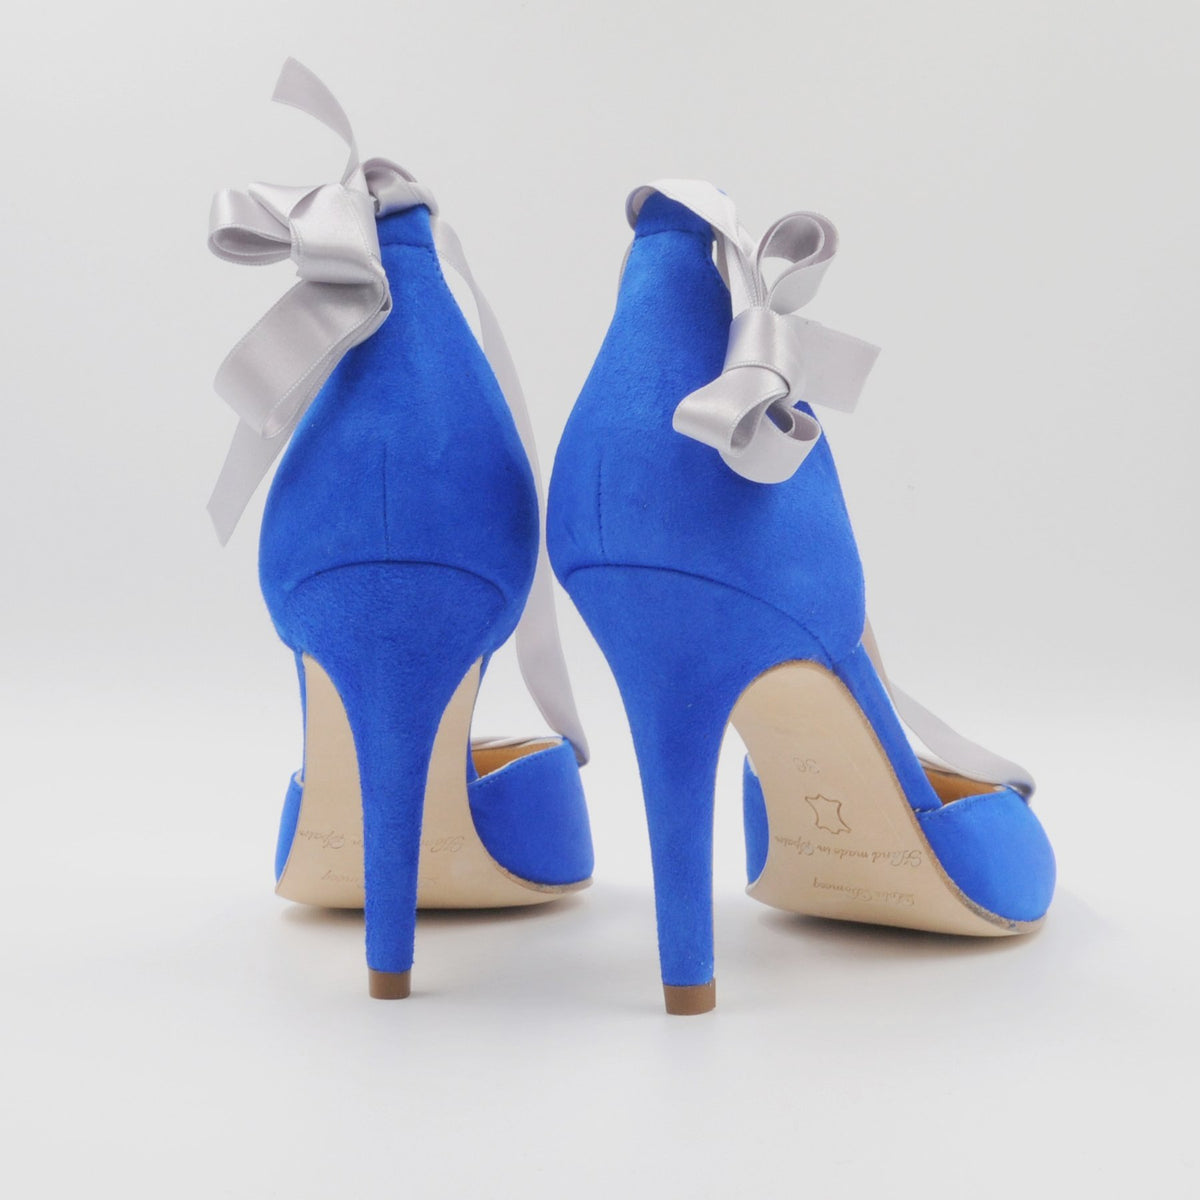 Lola Domecq Sophie In Blue Handcrafted suede lace up high heels